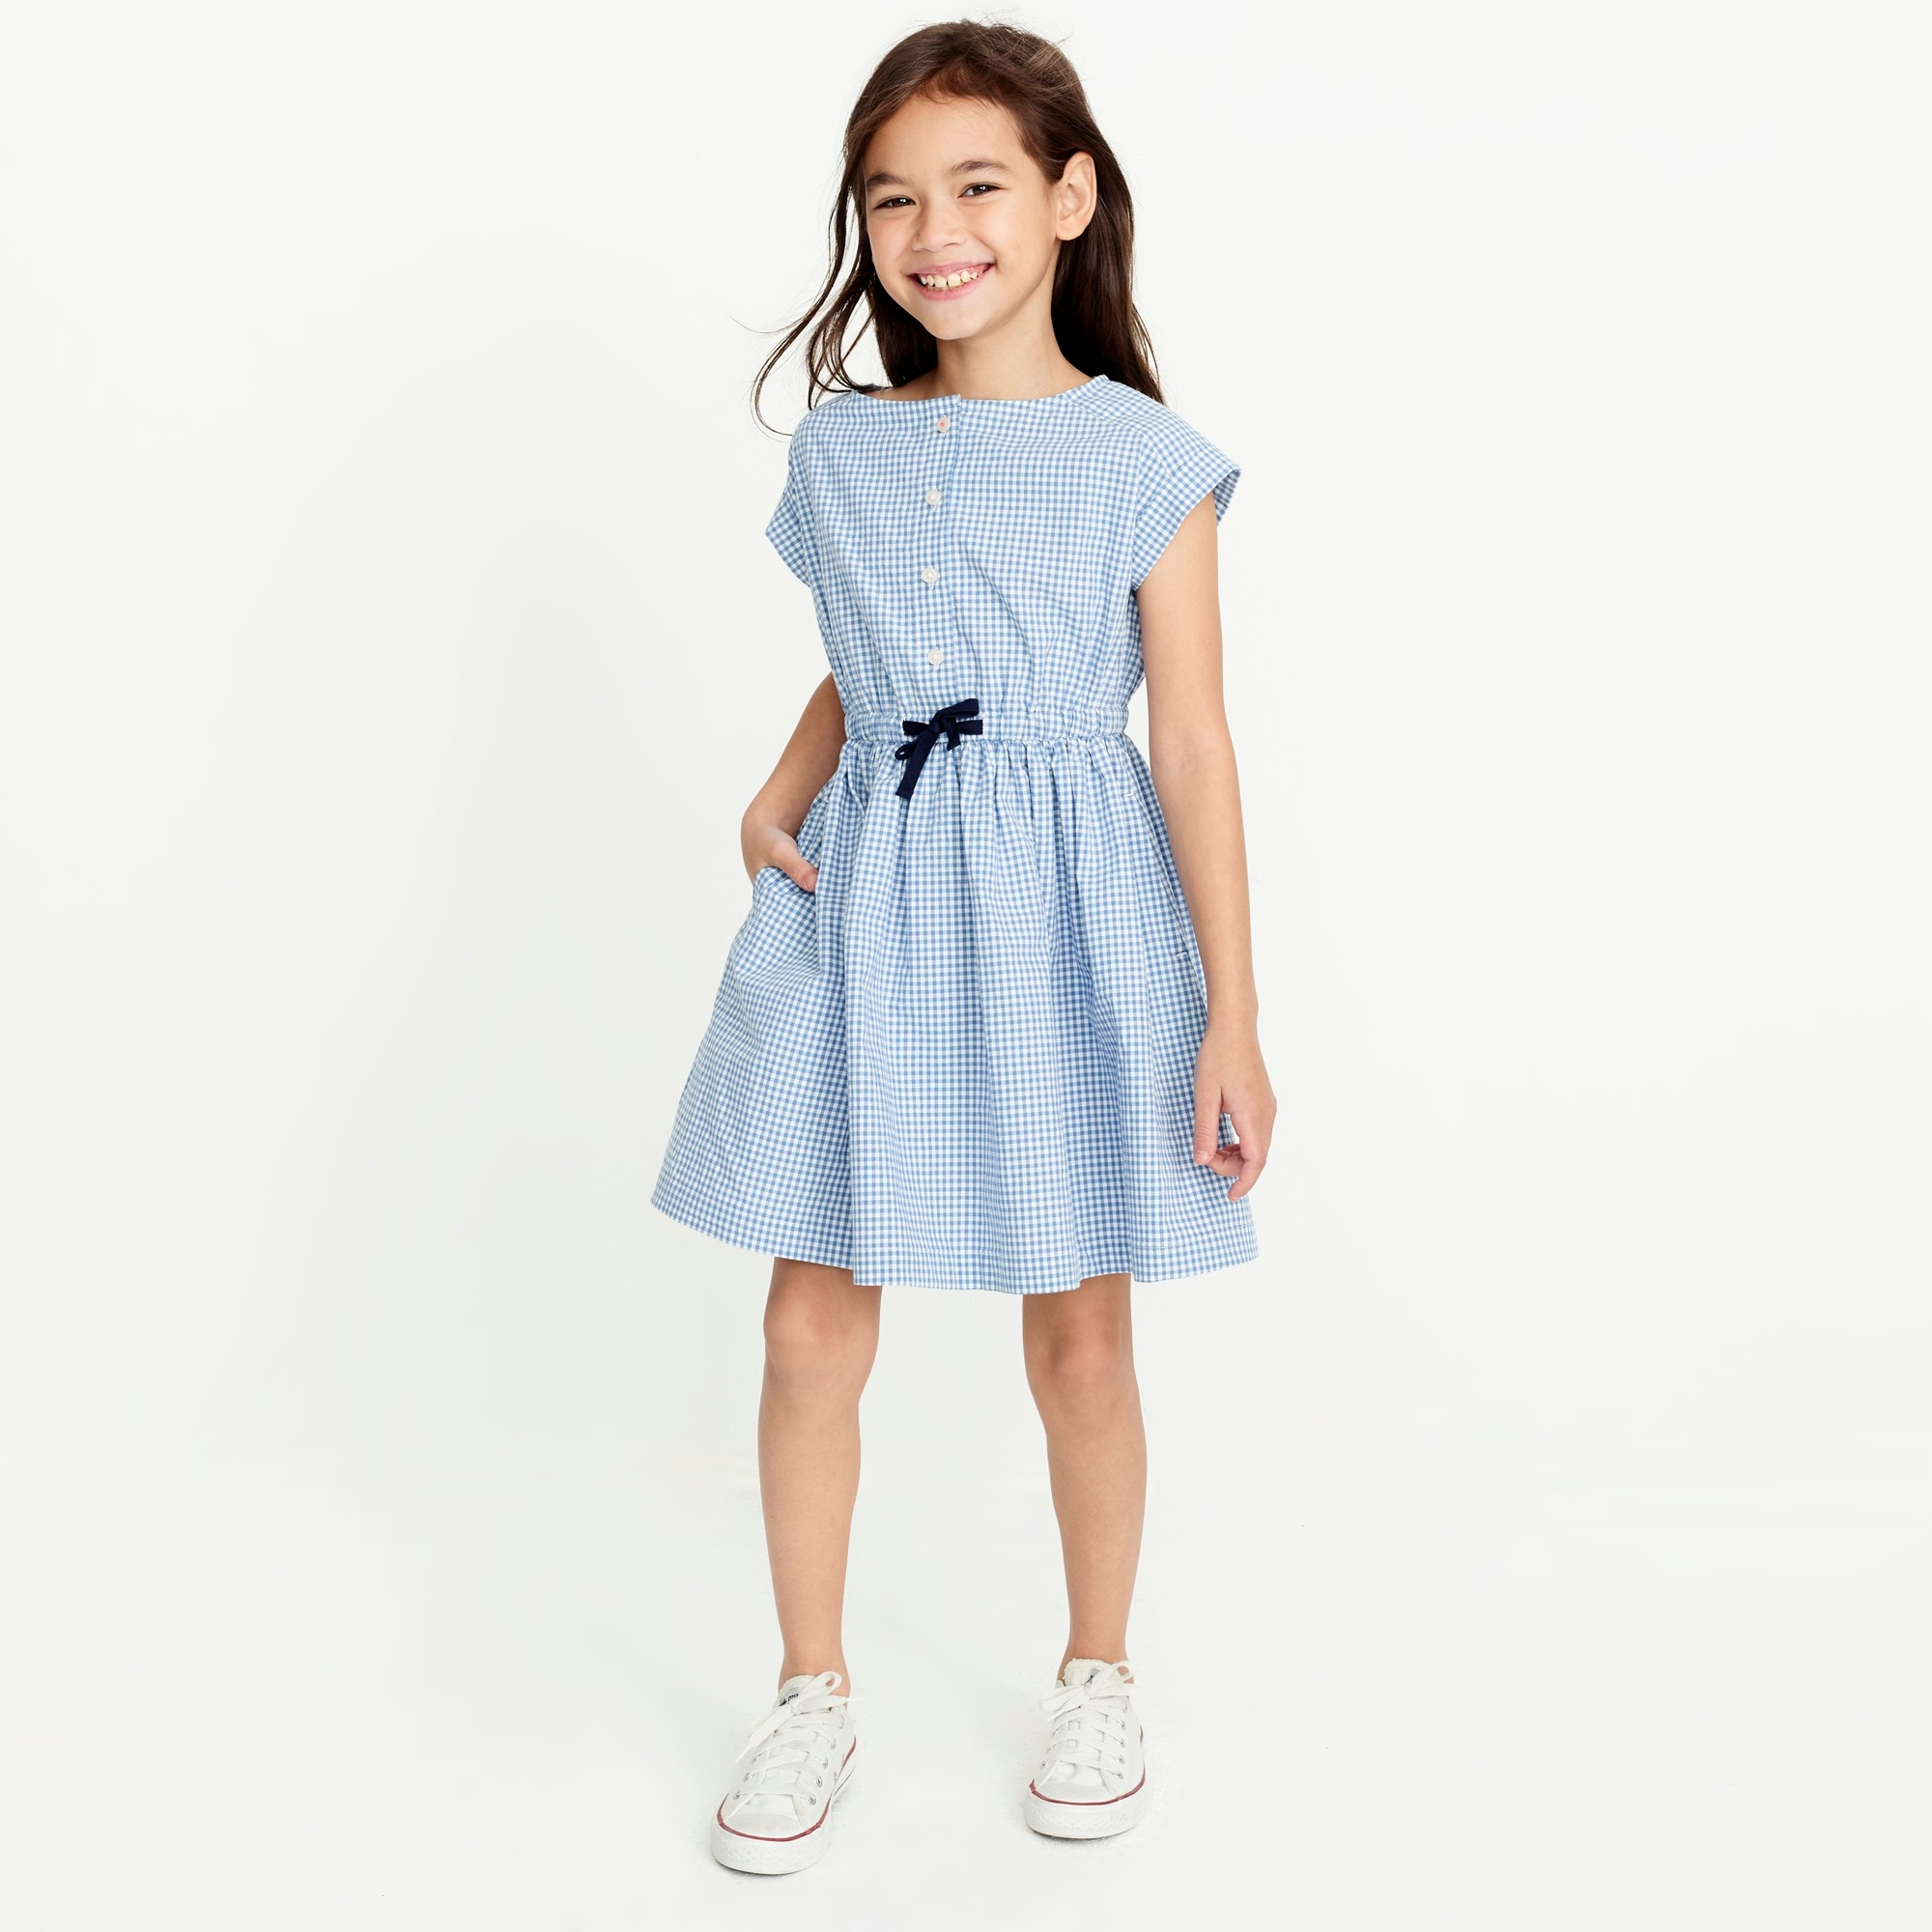 girls' short-sleeve gingham shirt dress : factorygirls dresses